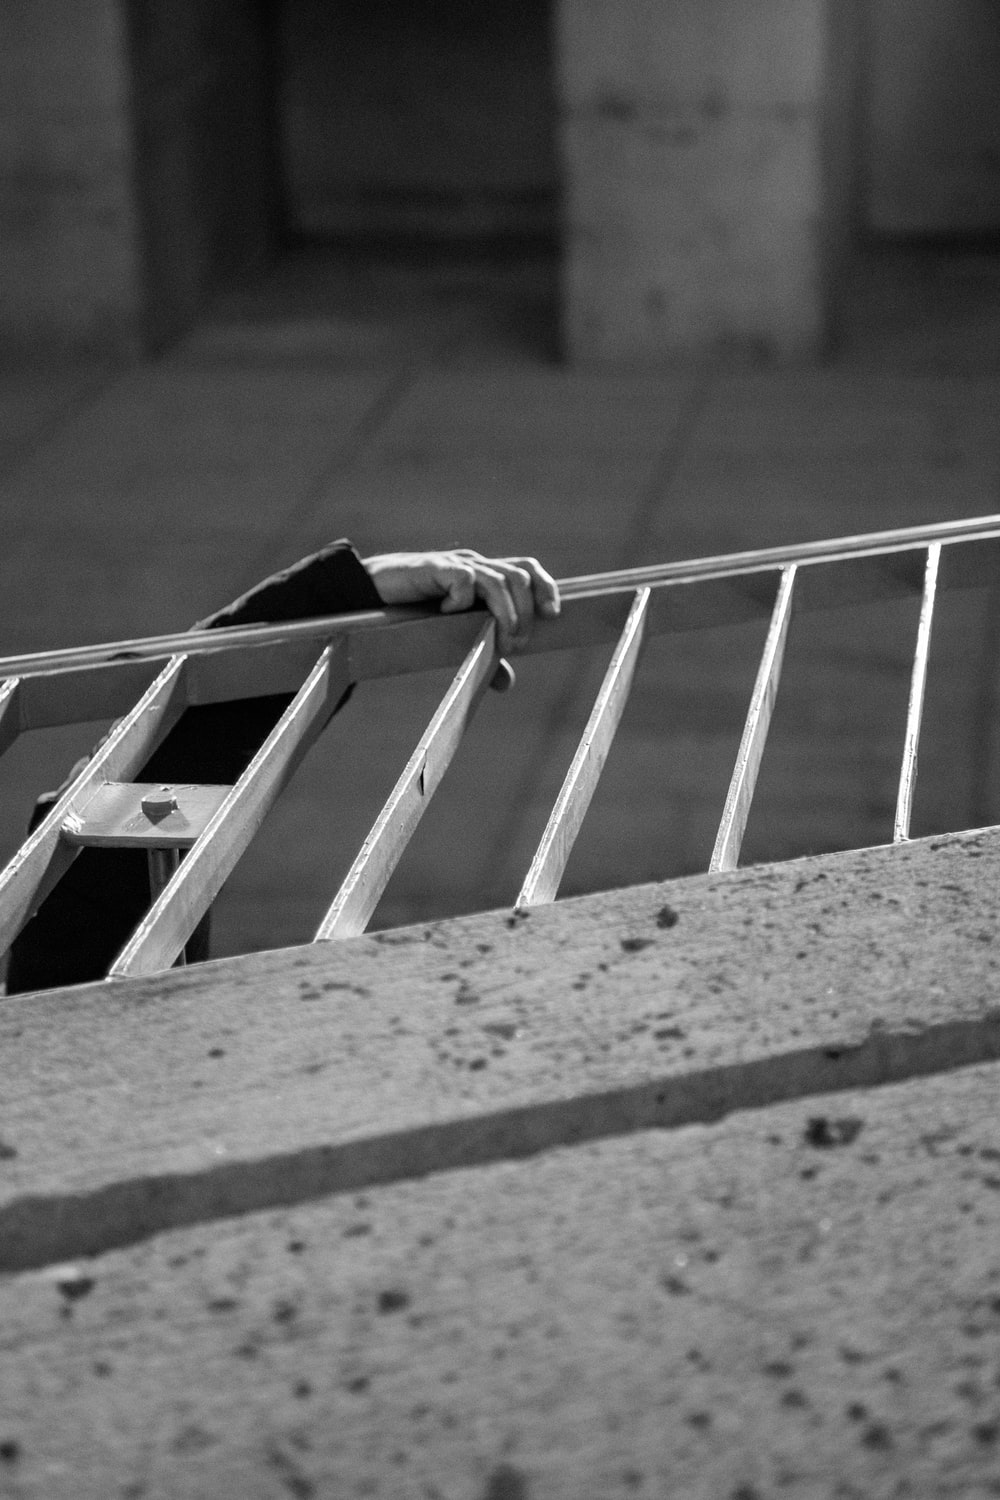 man climbing up the stairs with handrail